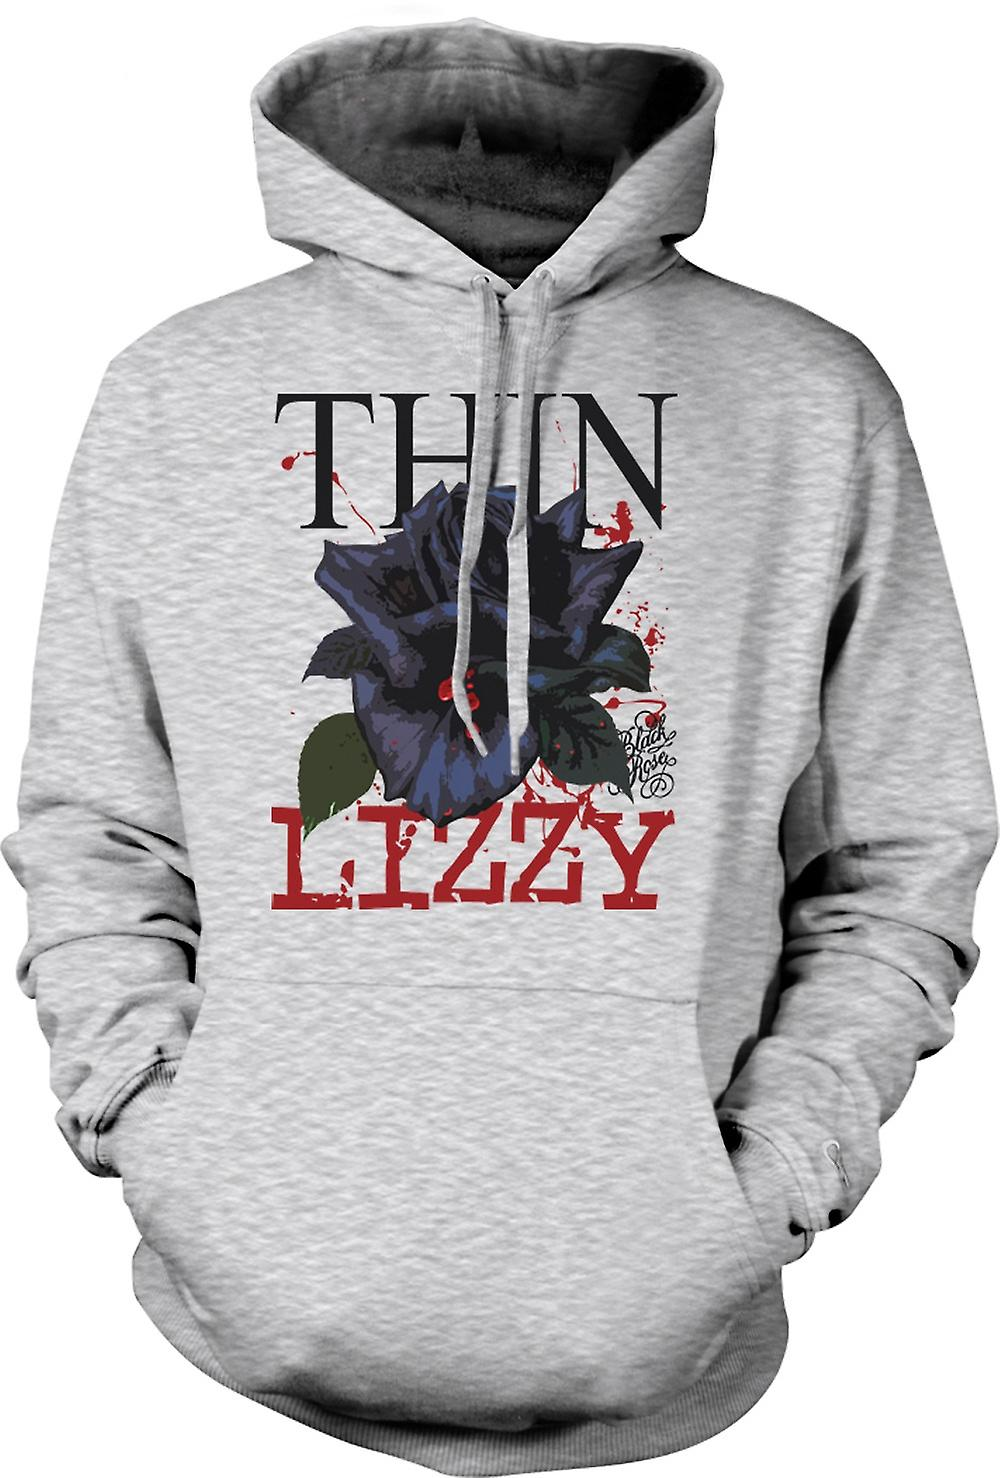 Mens Hoodie - Thin Lizzy  Rose